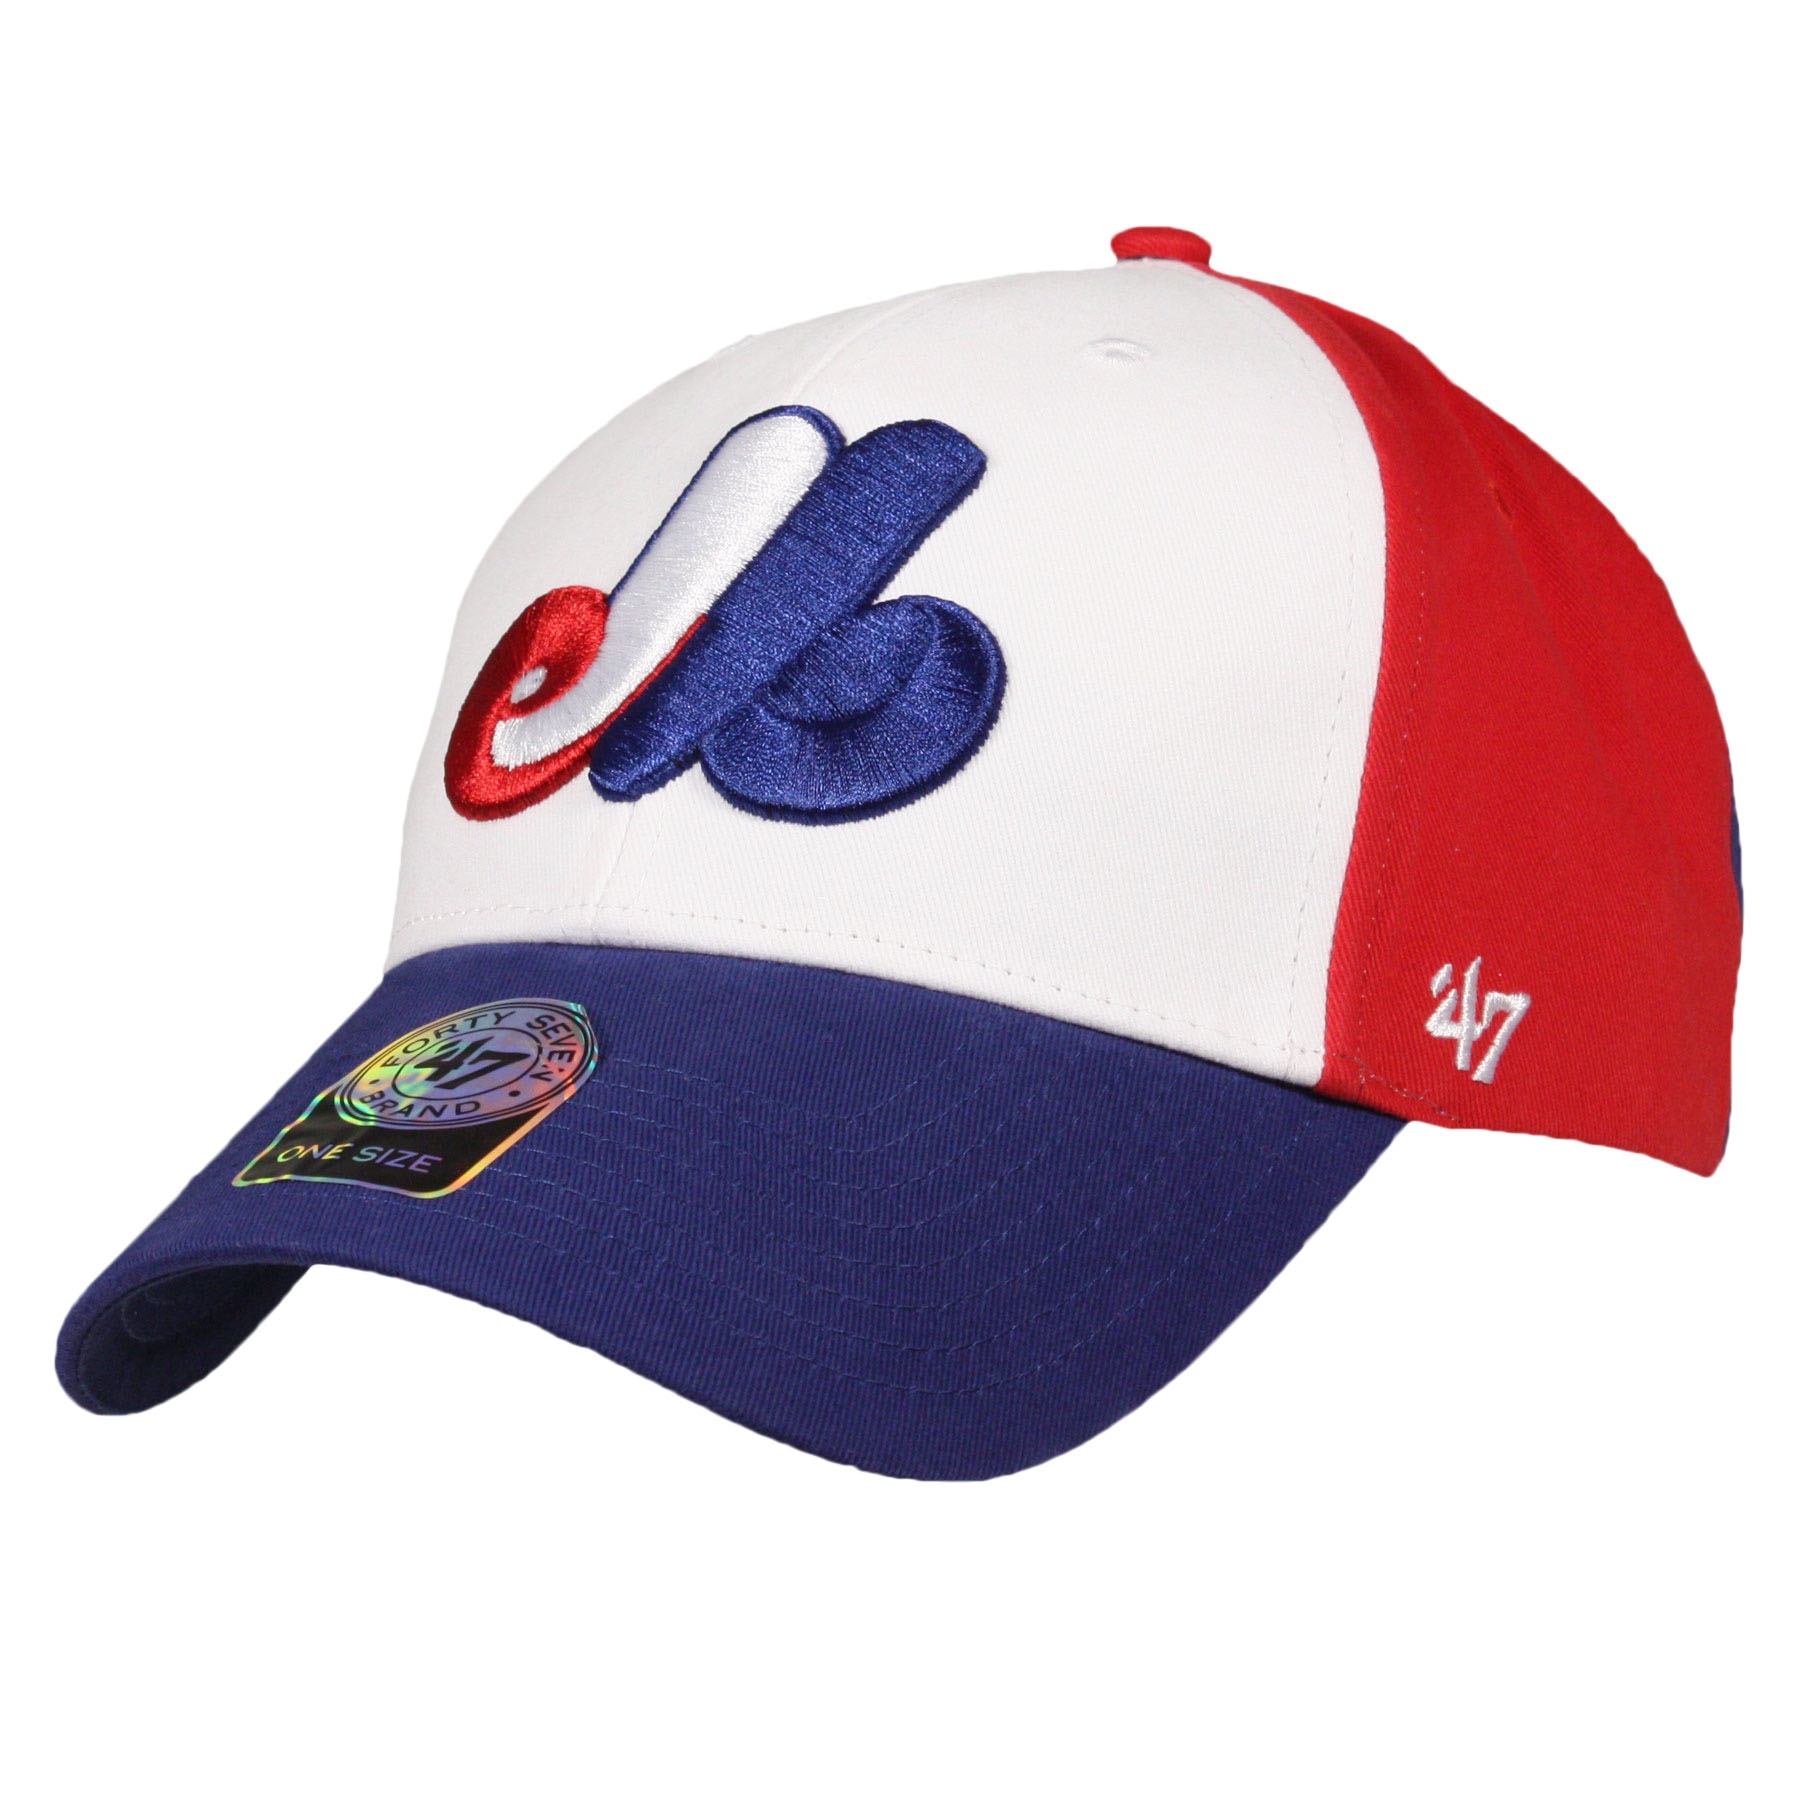 entire collection online for sale new images of official photos cbe92 1826c royalblue toronto blue jays new era 47 ...